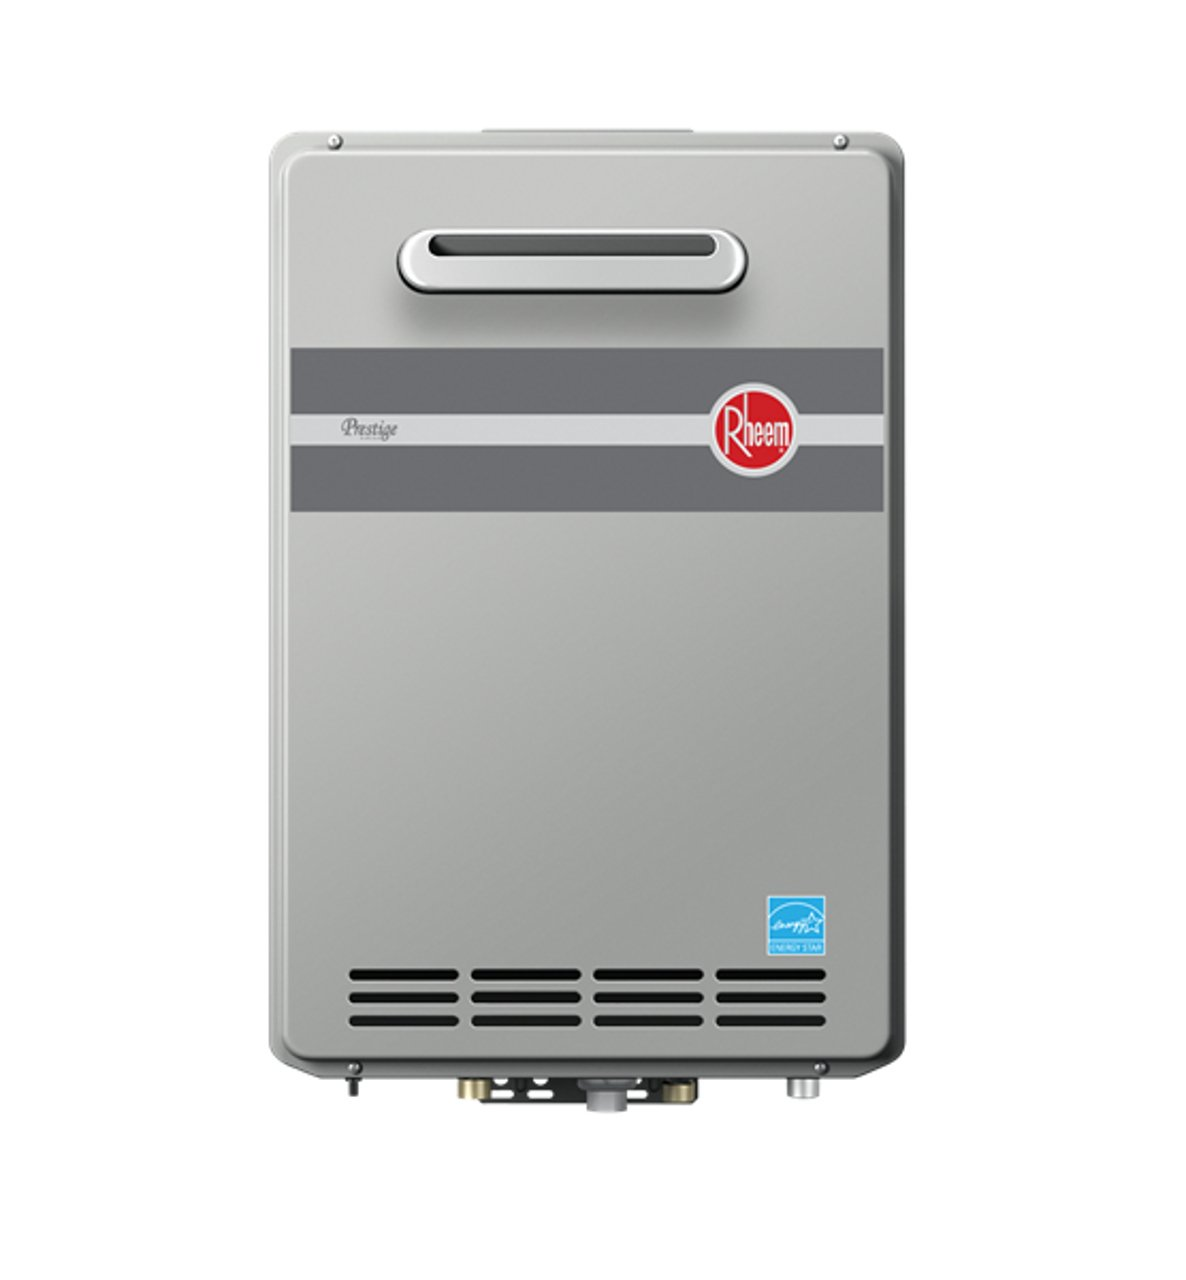 Rheem Rtgh 95xln Prestige Natural Gas Outdoor Whole House Low Nox Residential Water Heater Thermostat Wiring Diagram Condensing Tankless 95 Gpm